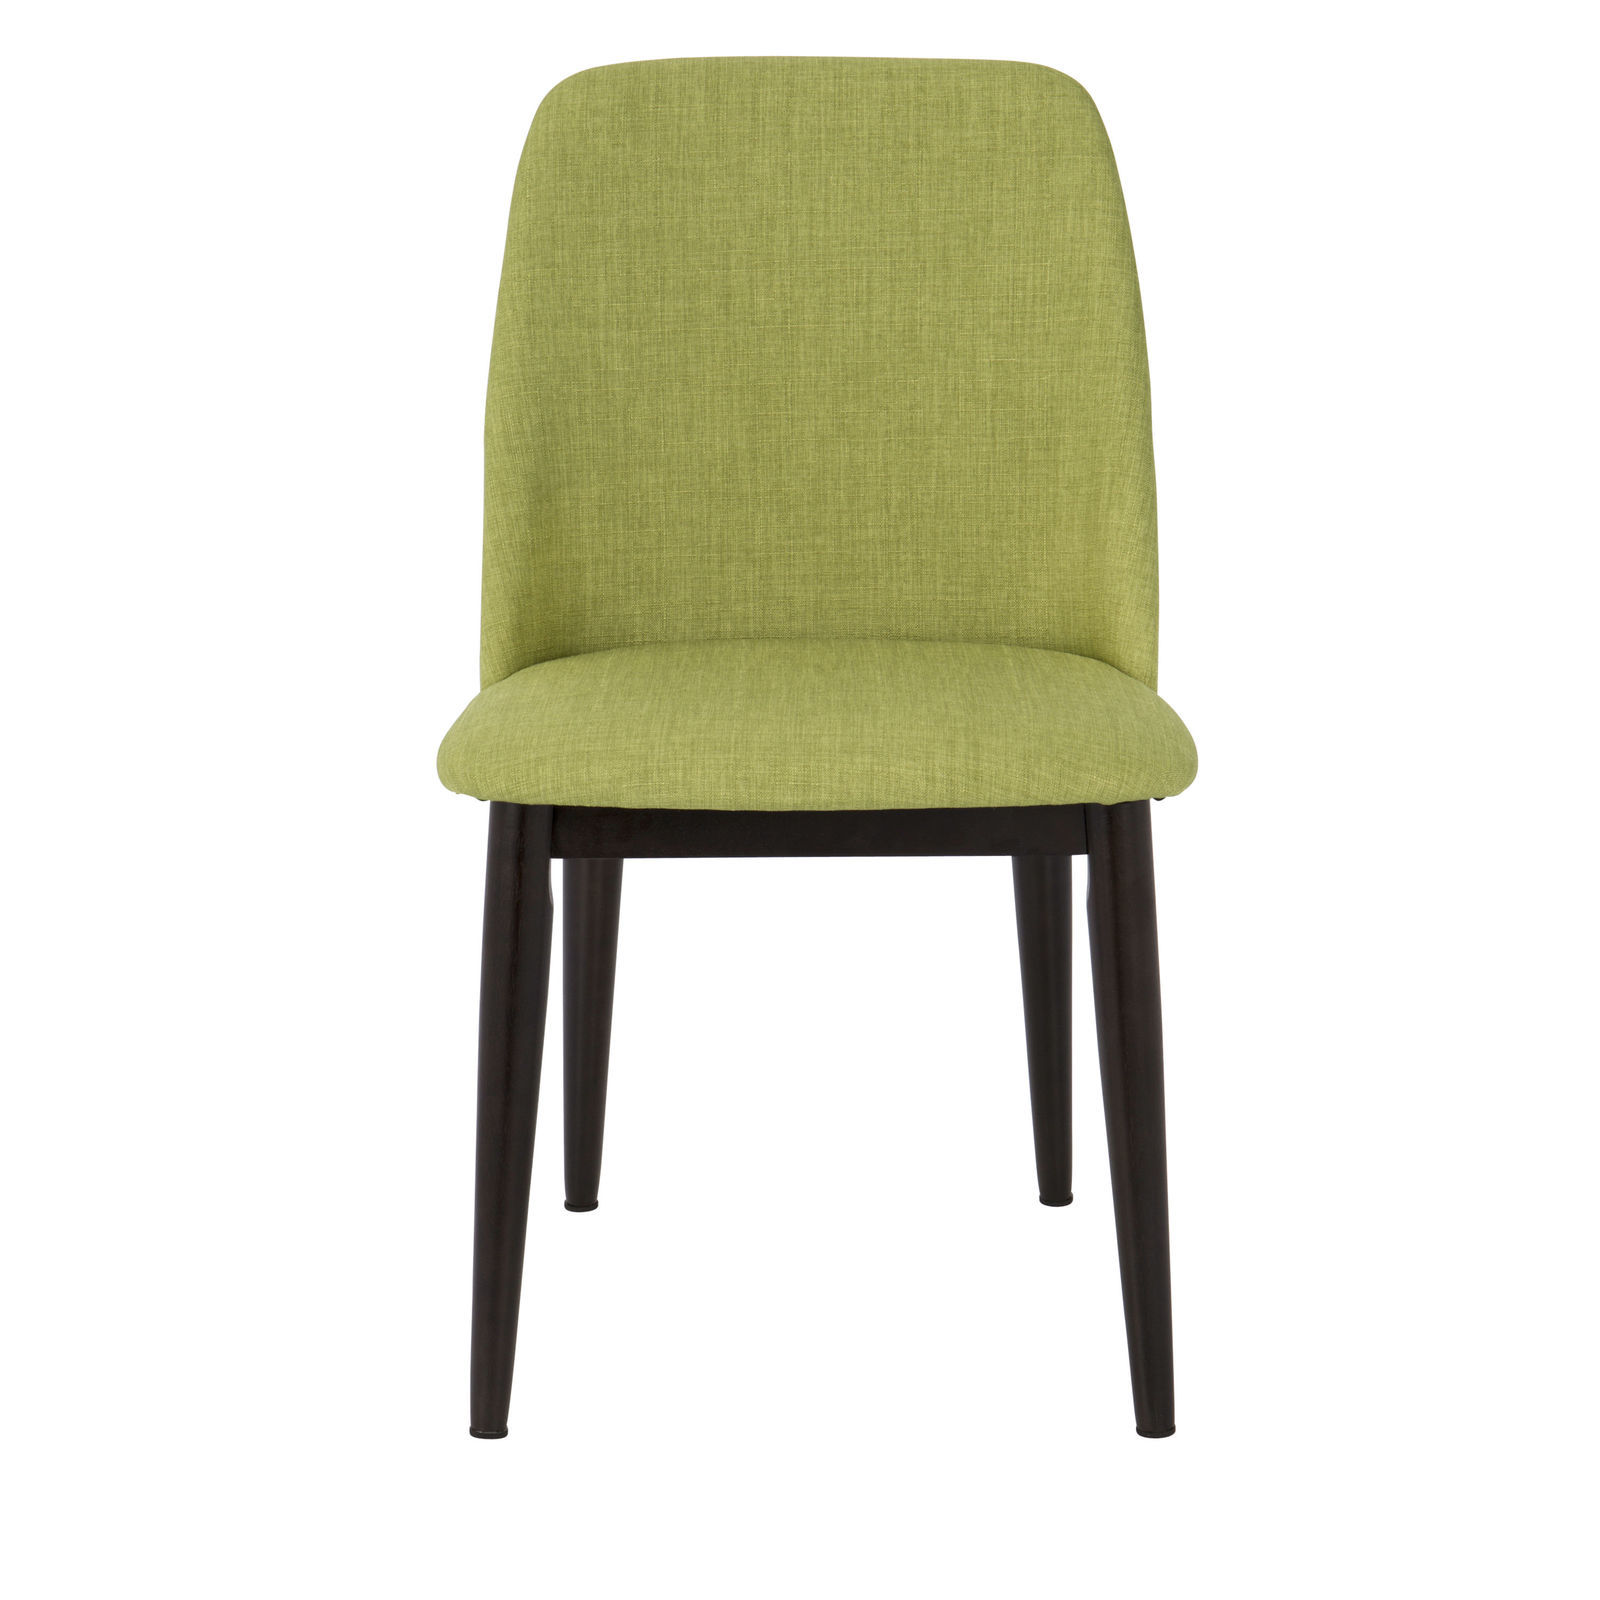 Set Of 2 Upholstered Mid-Century Solid Wood Dining Chair Kitchen Furniture New